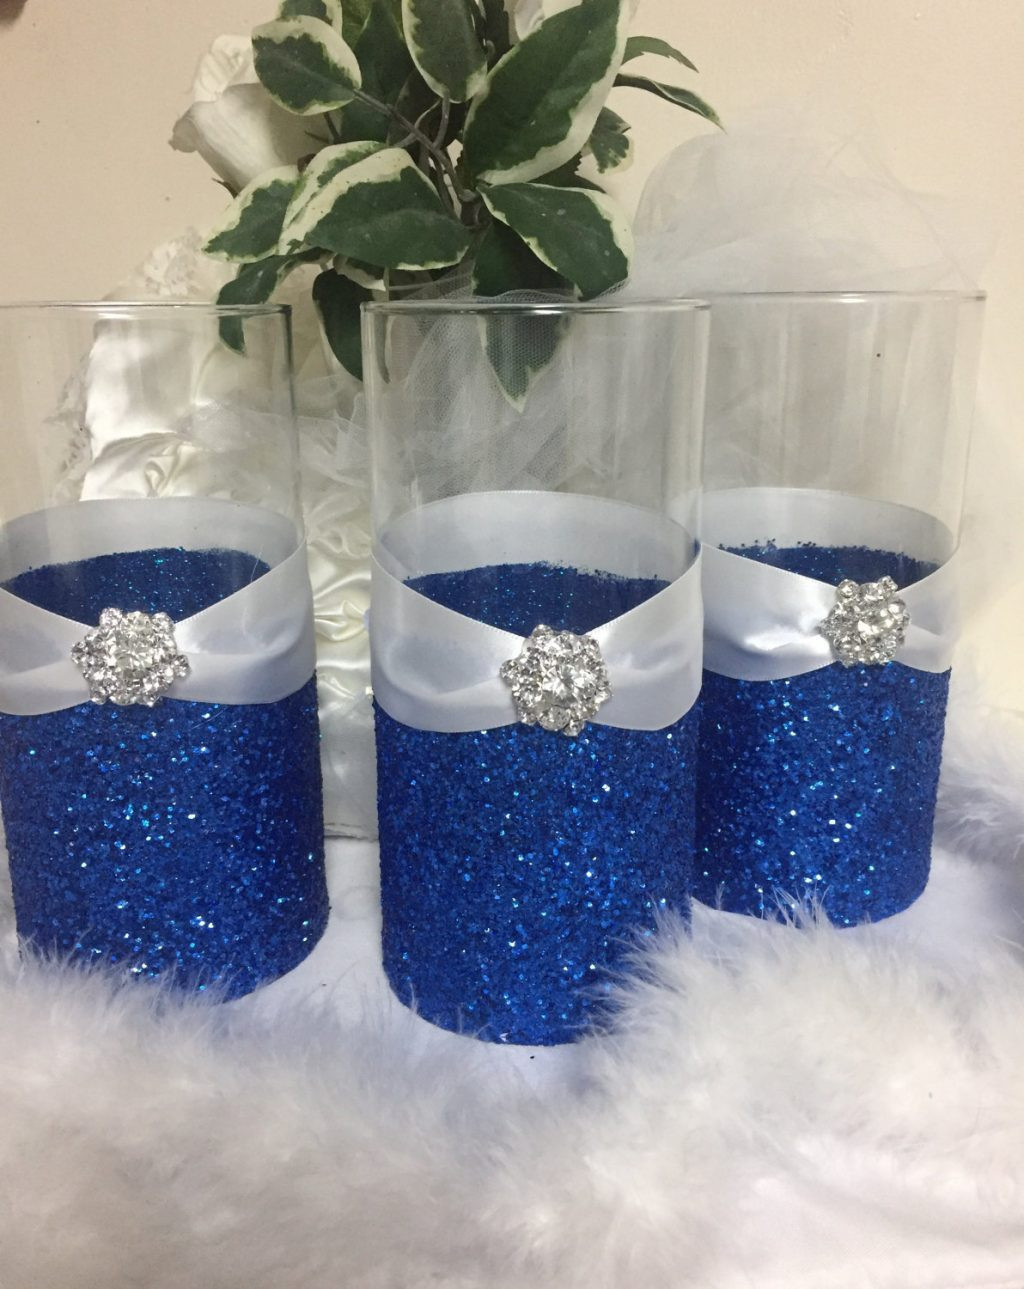 blue decorative vases of blue decorative vases images tallh vases glitter vase centerpiece pertaining to blue decorative vases images tallh vases glitter vase centerpiece diy vasei 0d ball for design